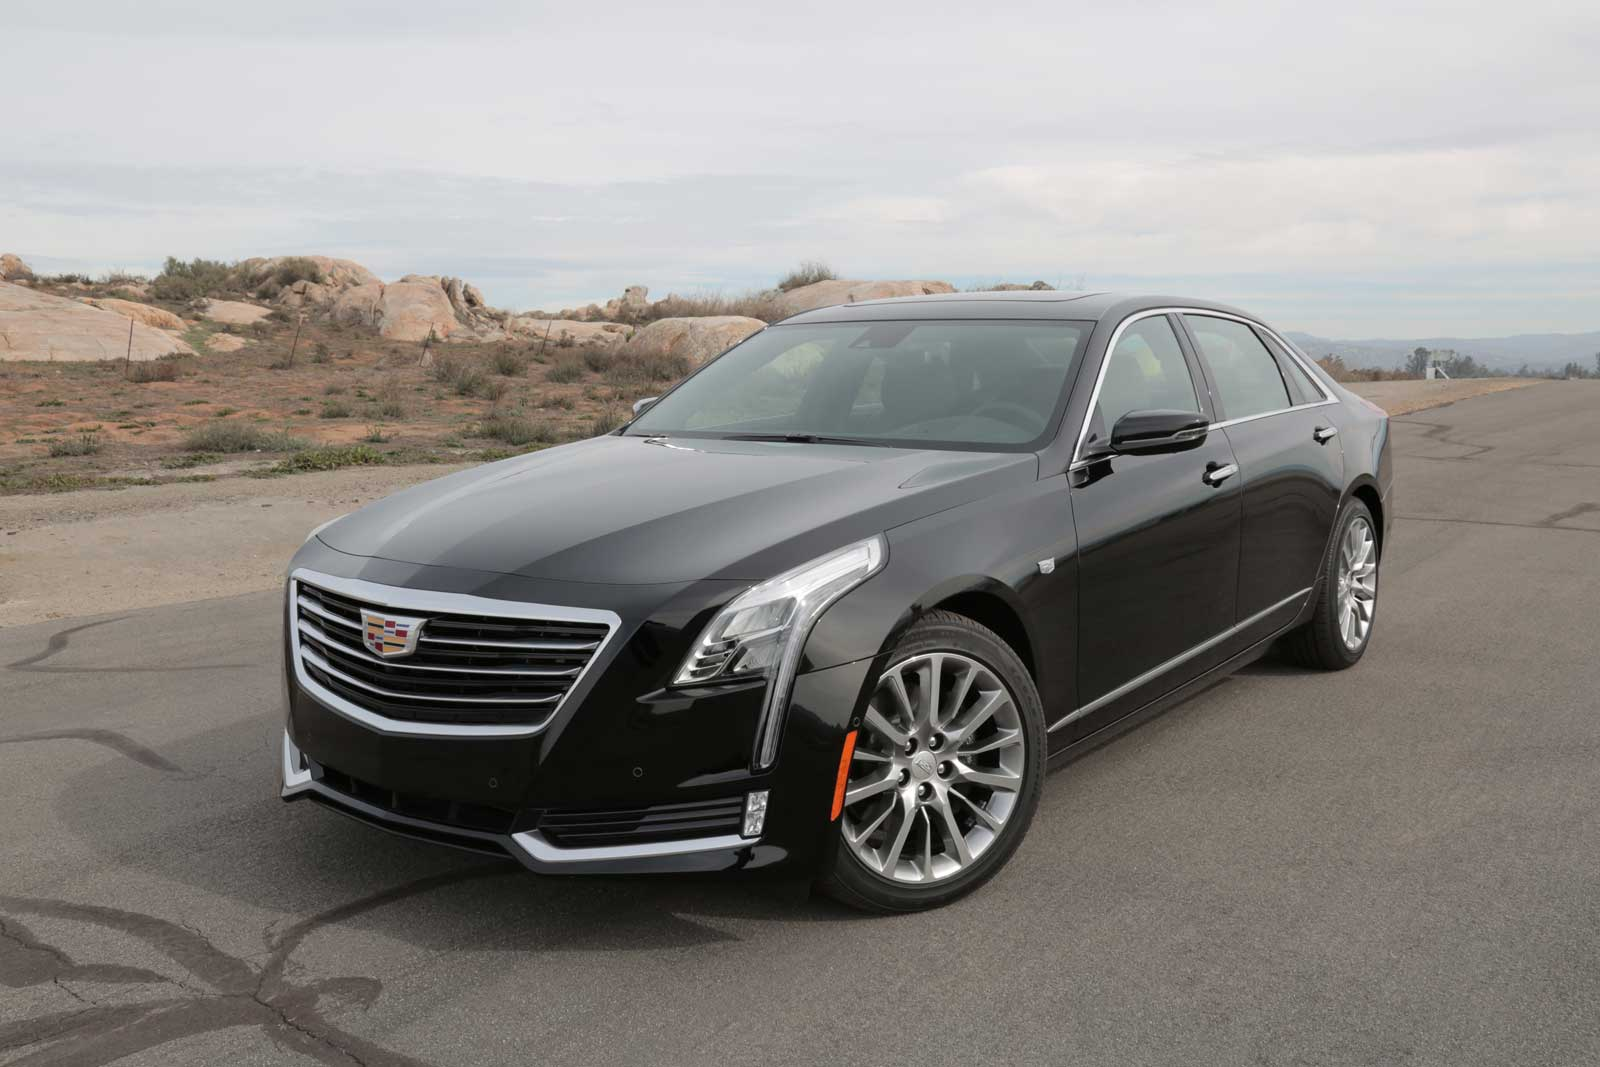 2016 cadillac ct6 review news. Black Bedroom Furniture Sets. Home Design Ideas